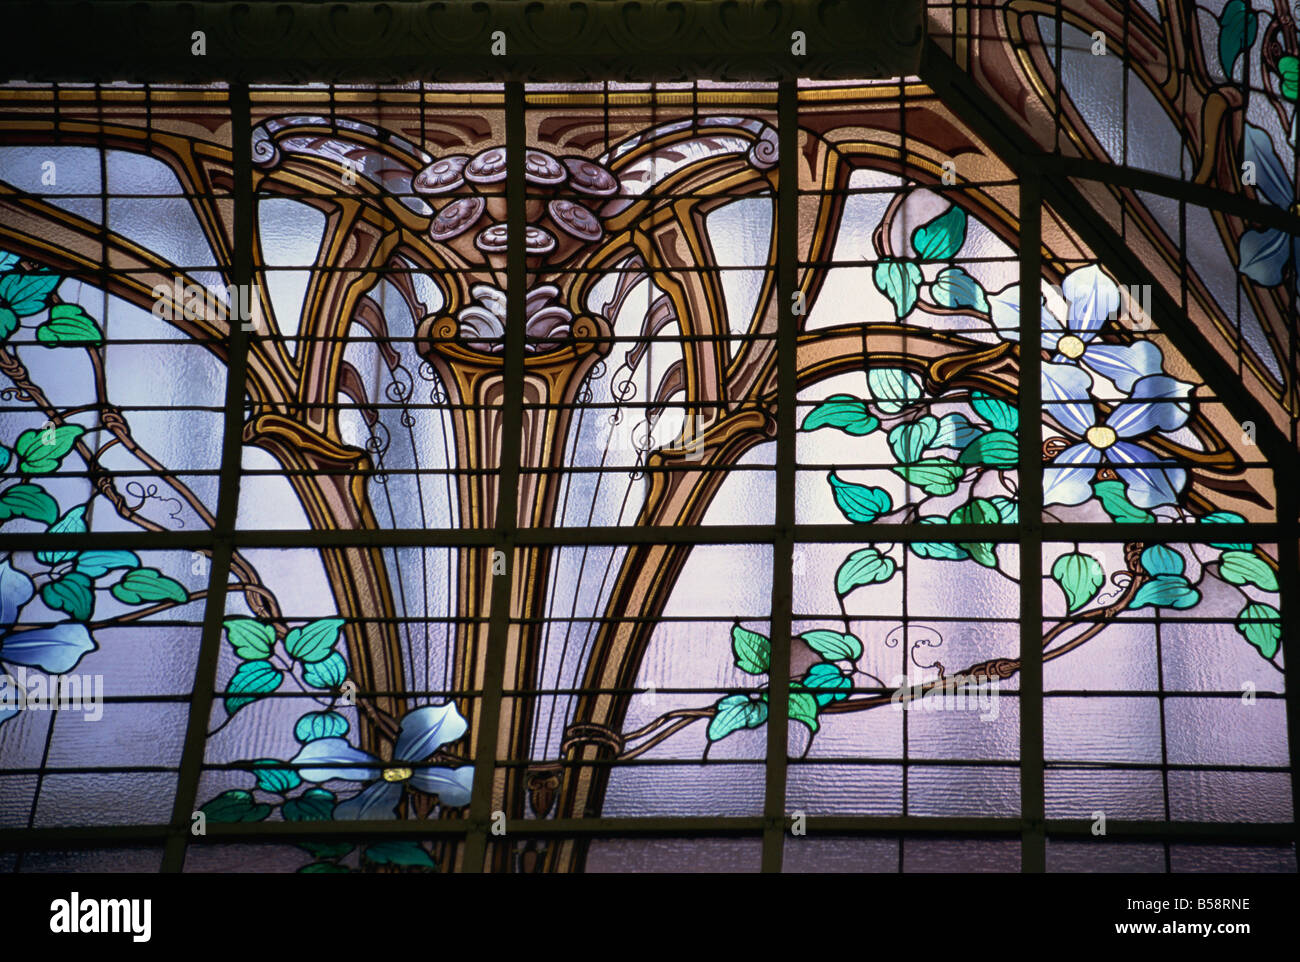 Stained glass roof by Jacques Gruber, Credit Lyonnaise Bank, Nancy, Lorraine, France, Europe - Stock Image